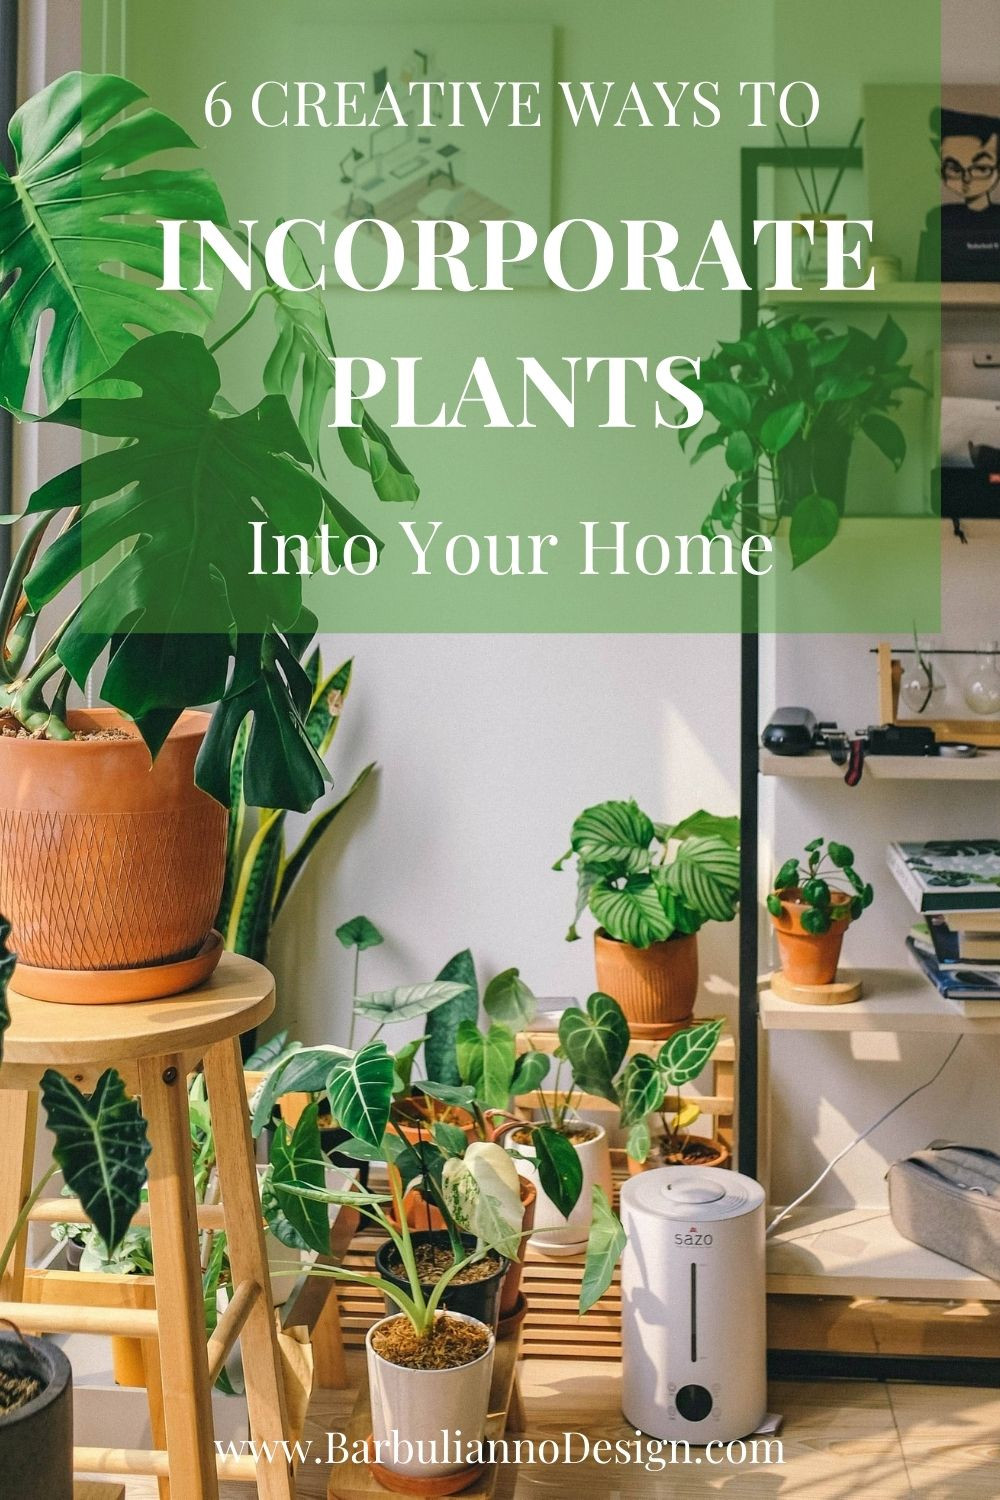 6 Creative Ways To Incorporate Plants Into Your Home